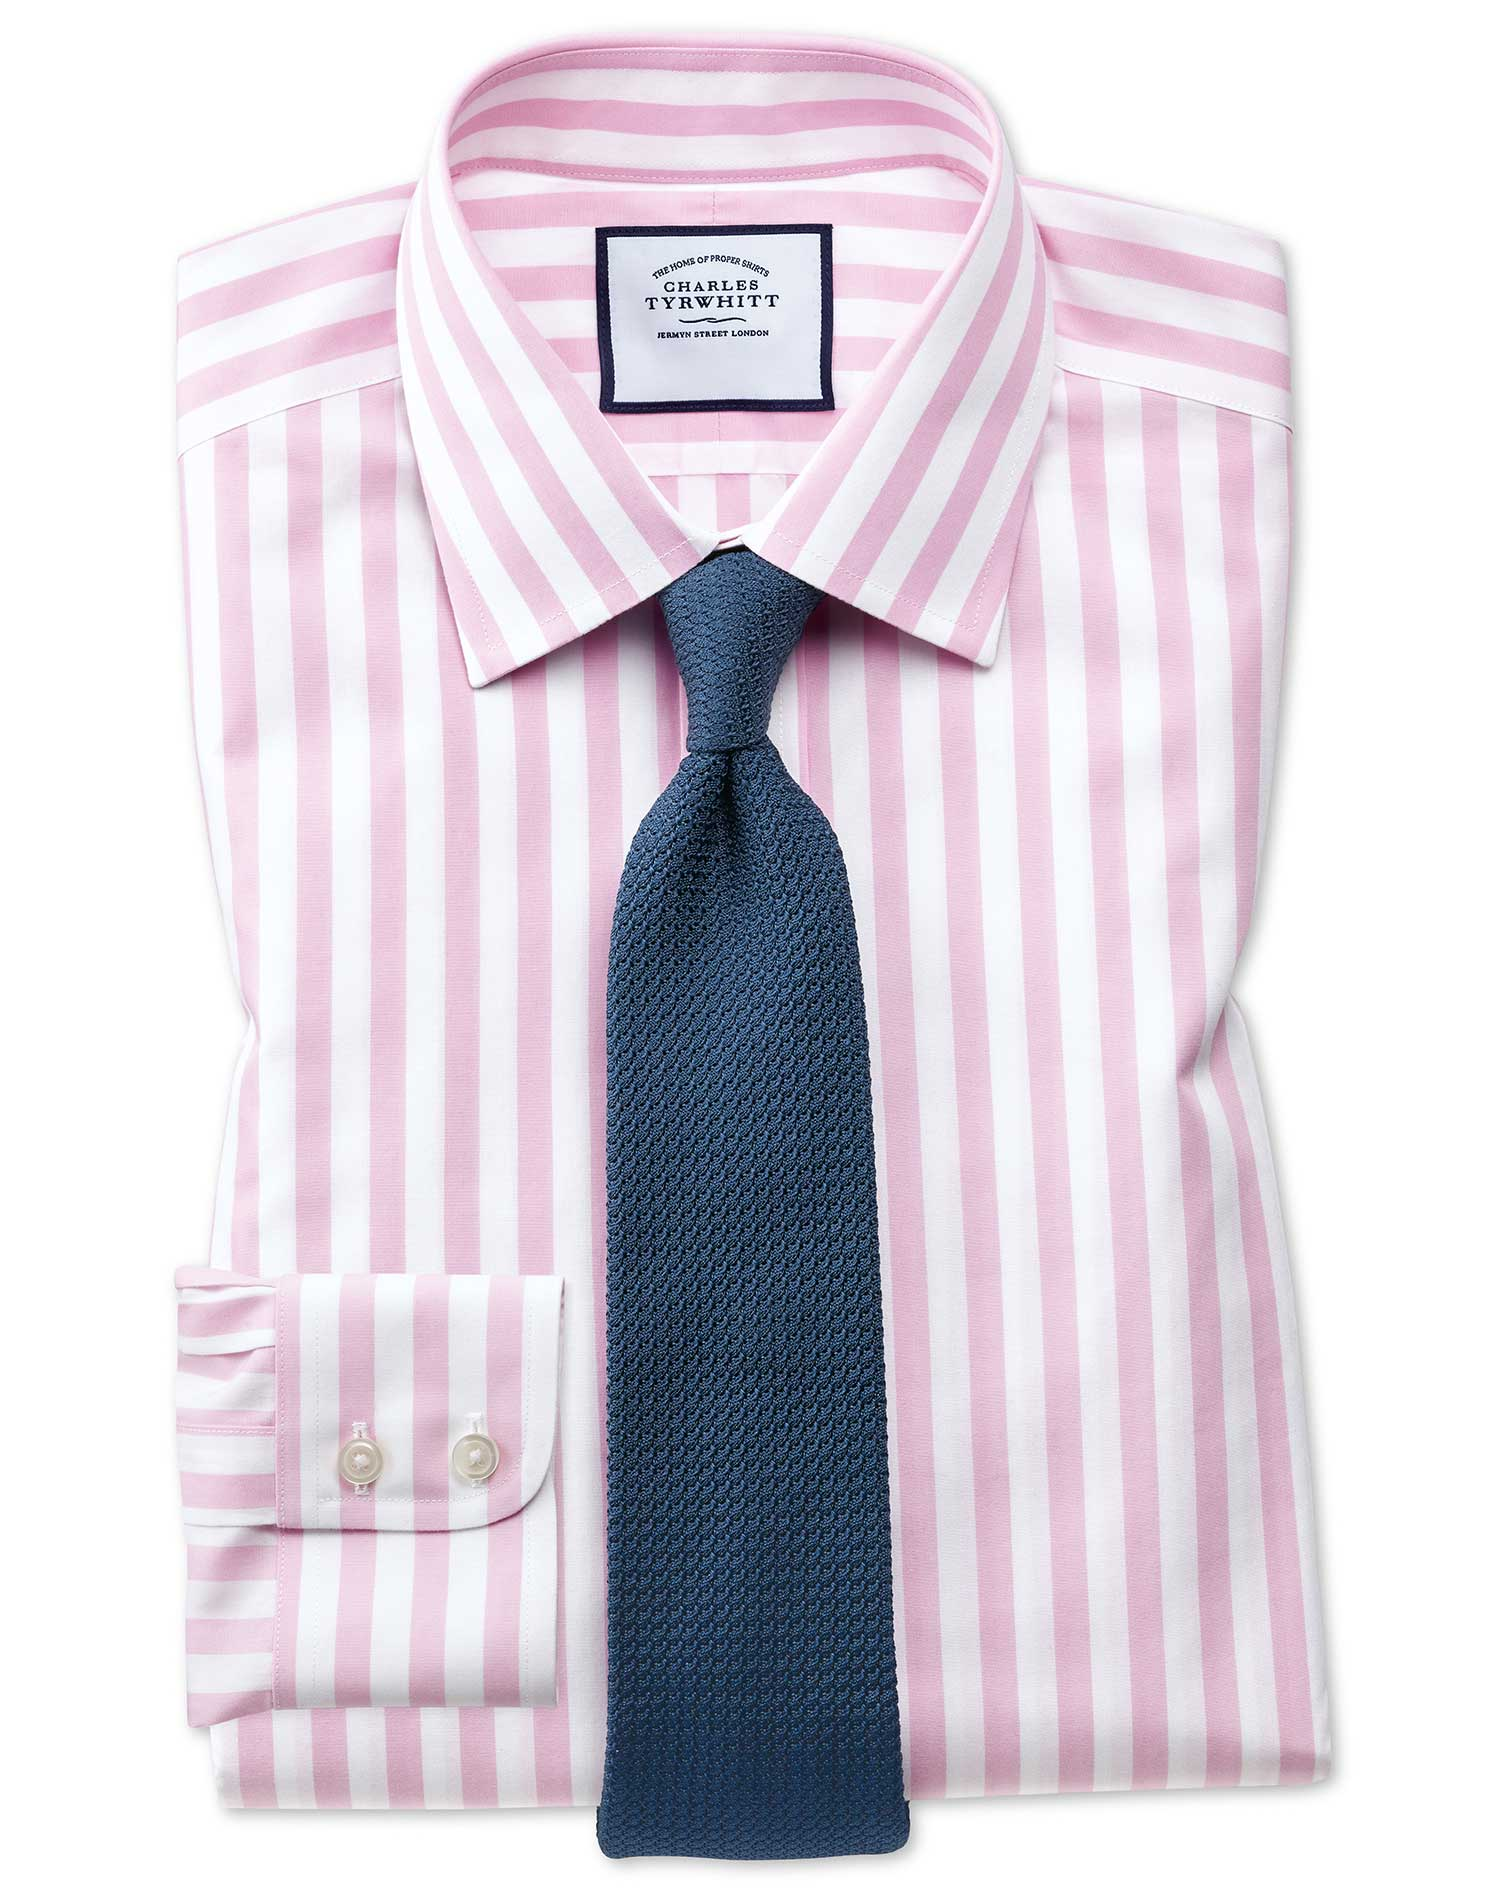 Slim Fit Non-Iron Pink Wide Bengal Stripe Cotton Formal Shirt Single Cuff Size 17.5/34 by Charles Ty